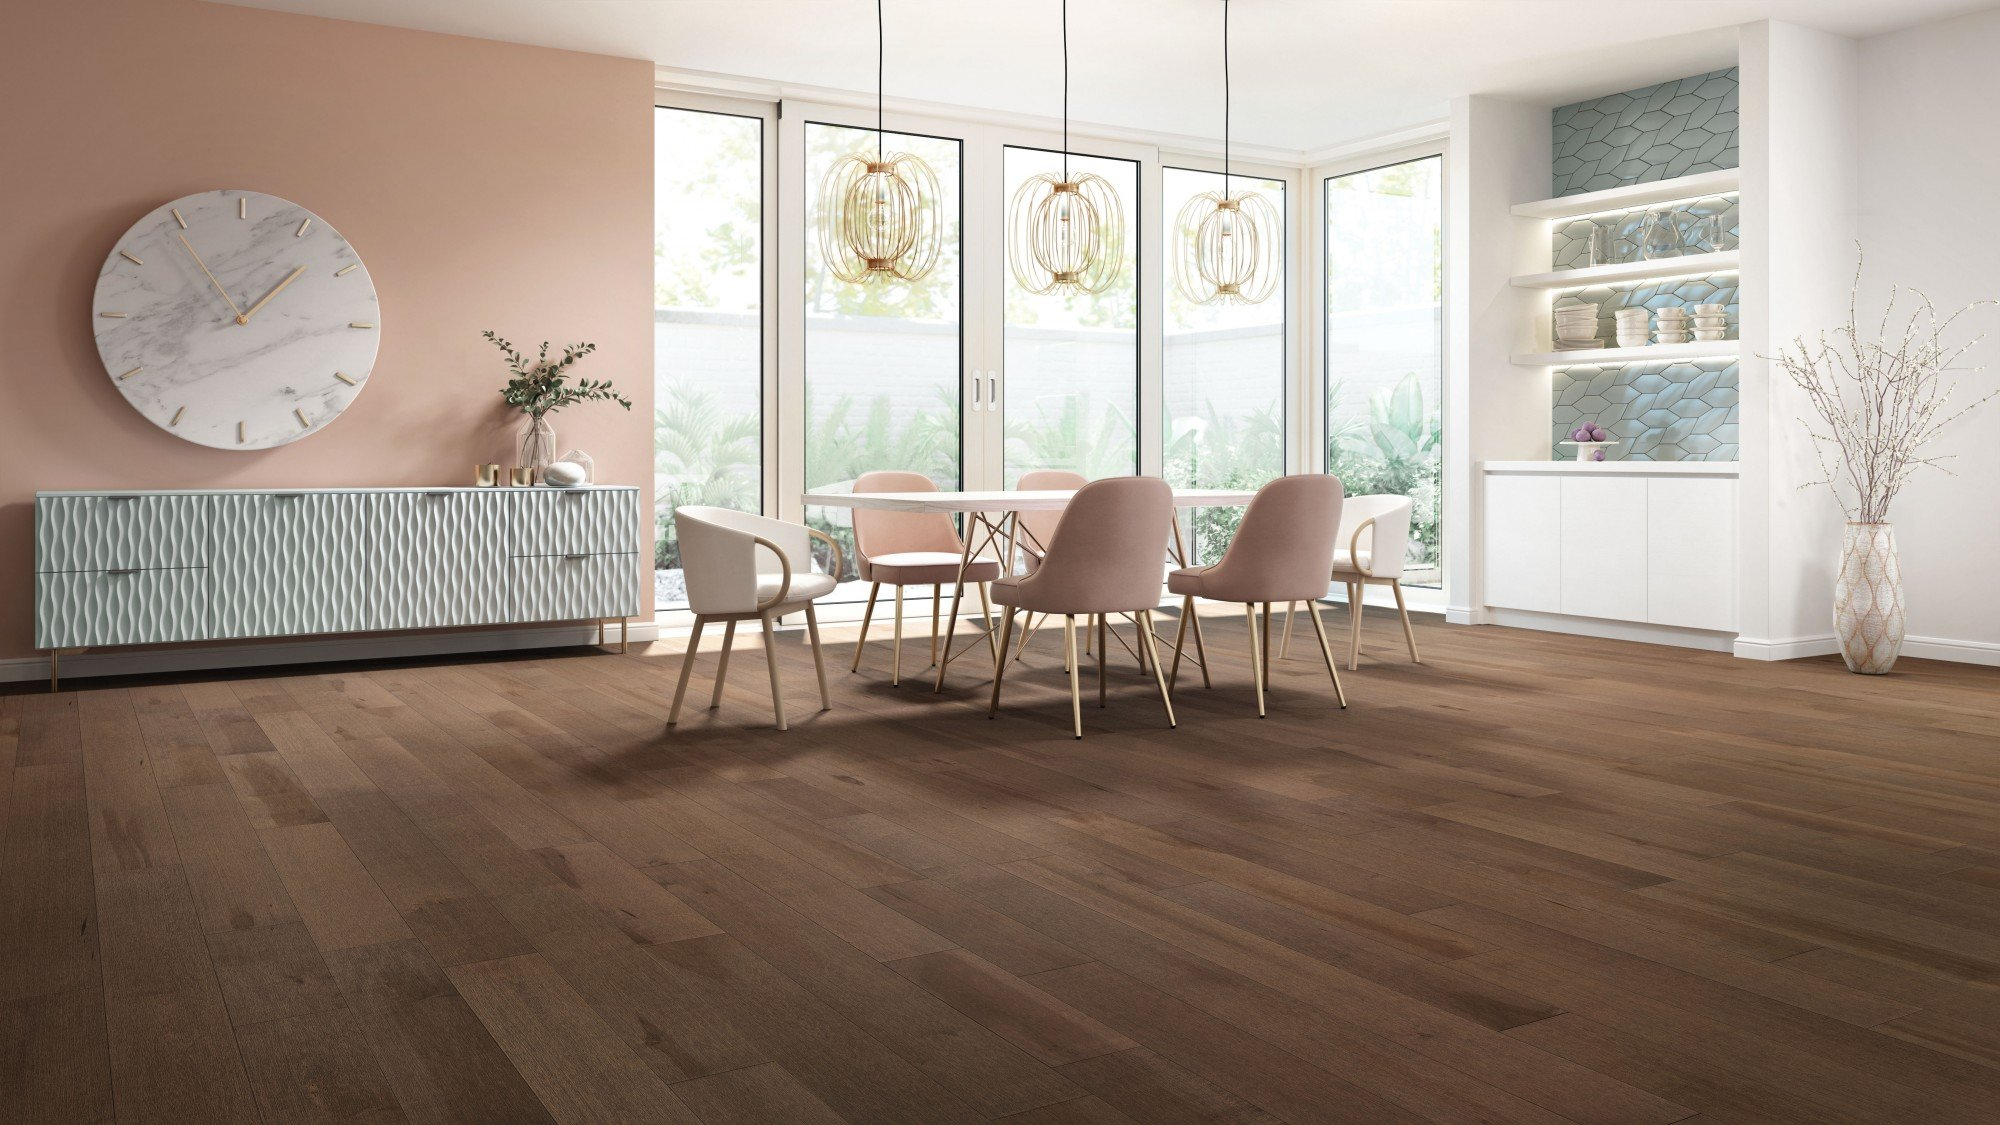 Laminated Flooring Special Characters And Specifications Mirage Floors, The Worldu0027s Finest And Best Hardwood Floors